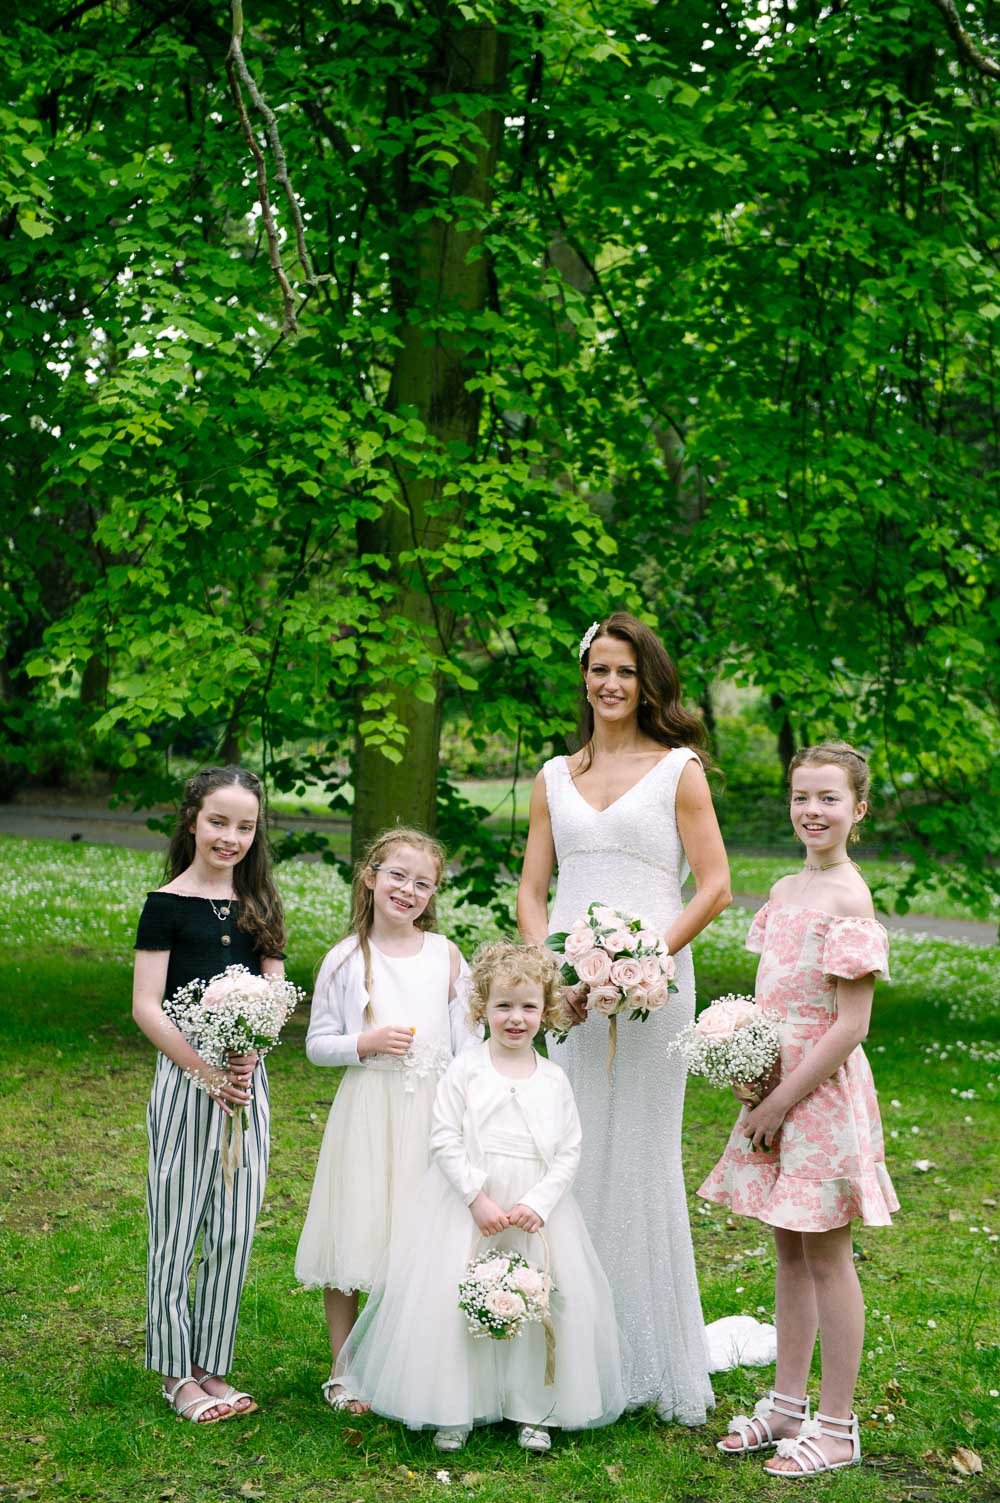 The bridal party pose for a wedding photograph in St. Stephen's Green during a wedding at Shelbourne Hotel